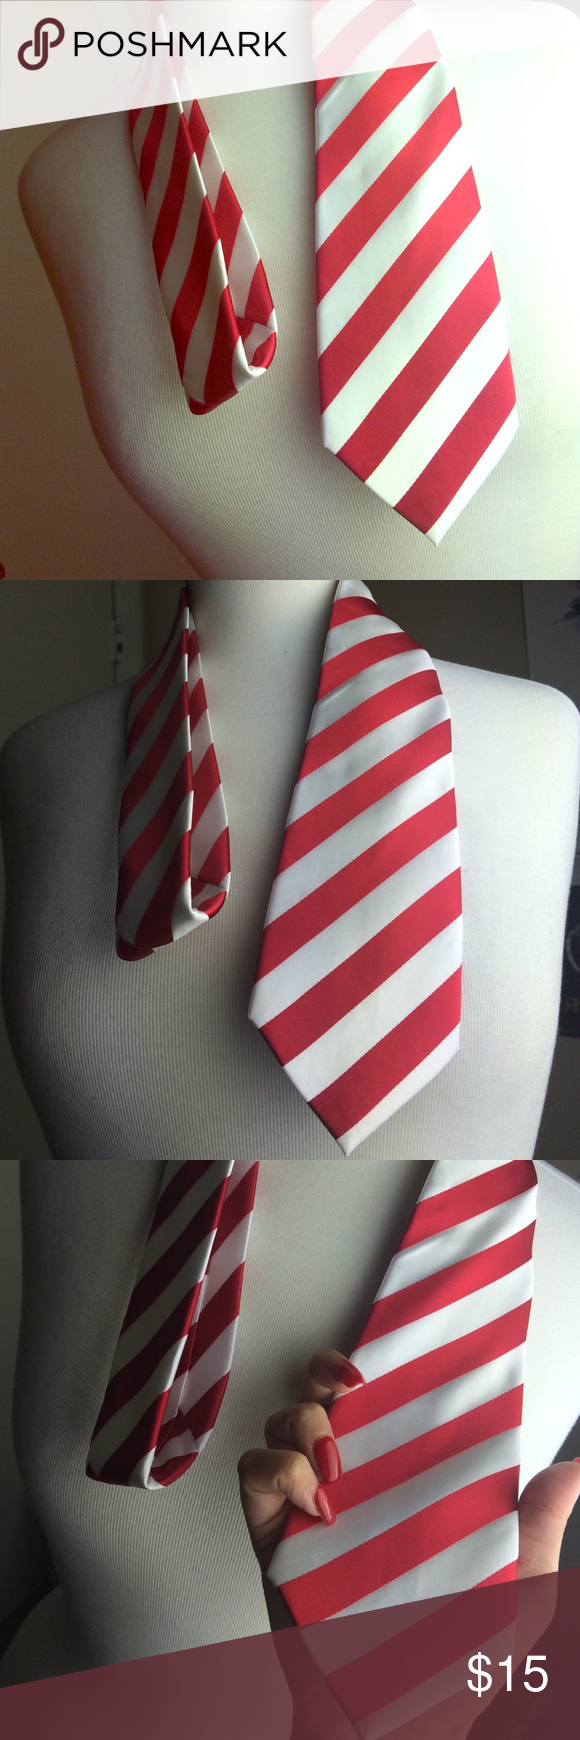 """The KAPPA Red and White Tie Brand new/ With tags Material: 100% Jacquard Woven Silk Size: 59.06"""" in length 3.35"""" in Width Designer Italian Accessories Ties"""